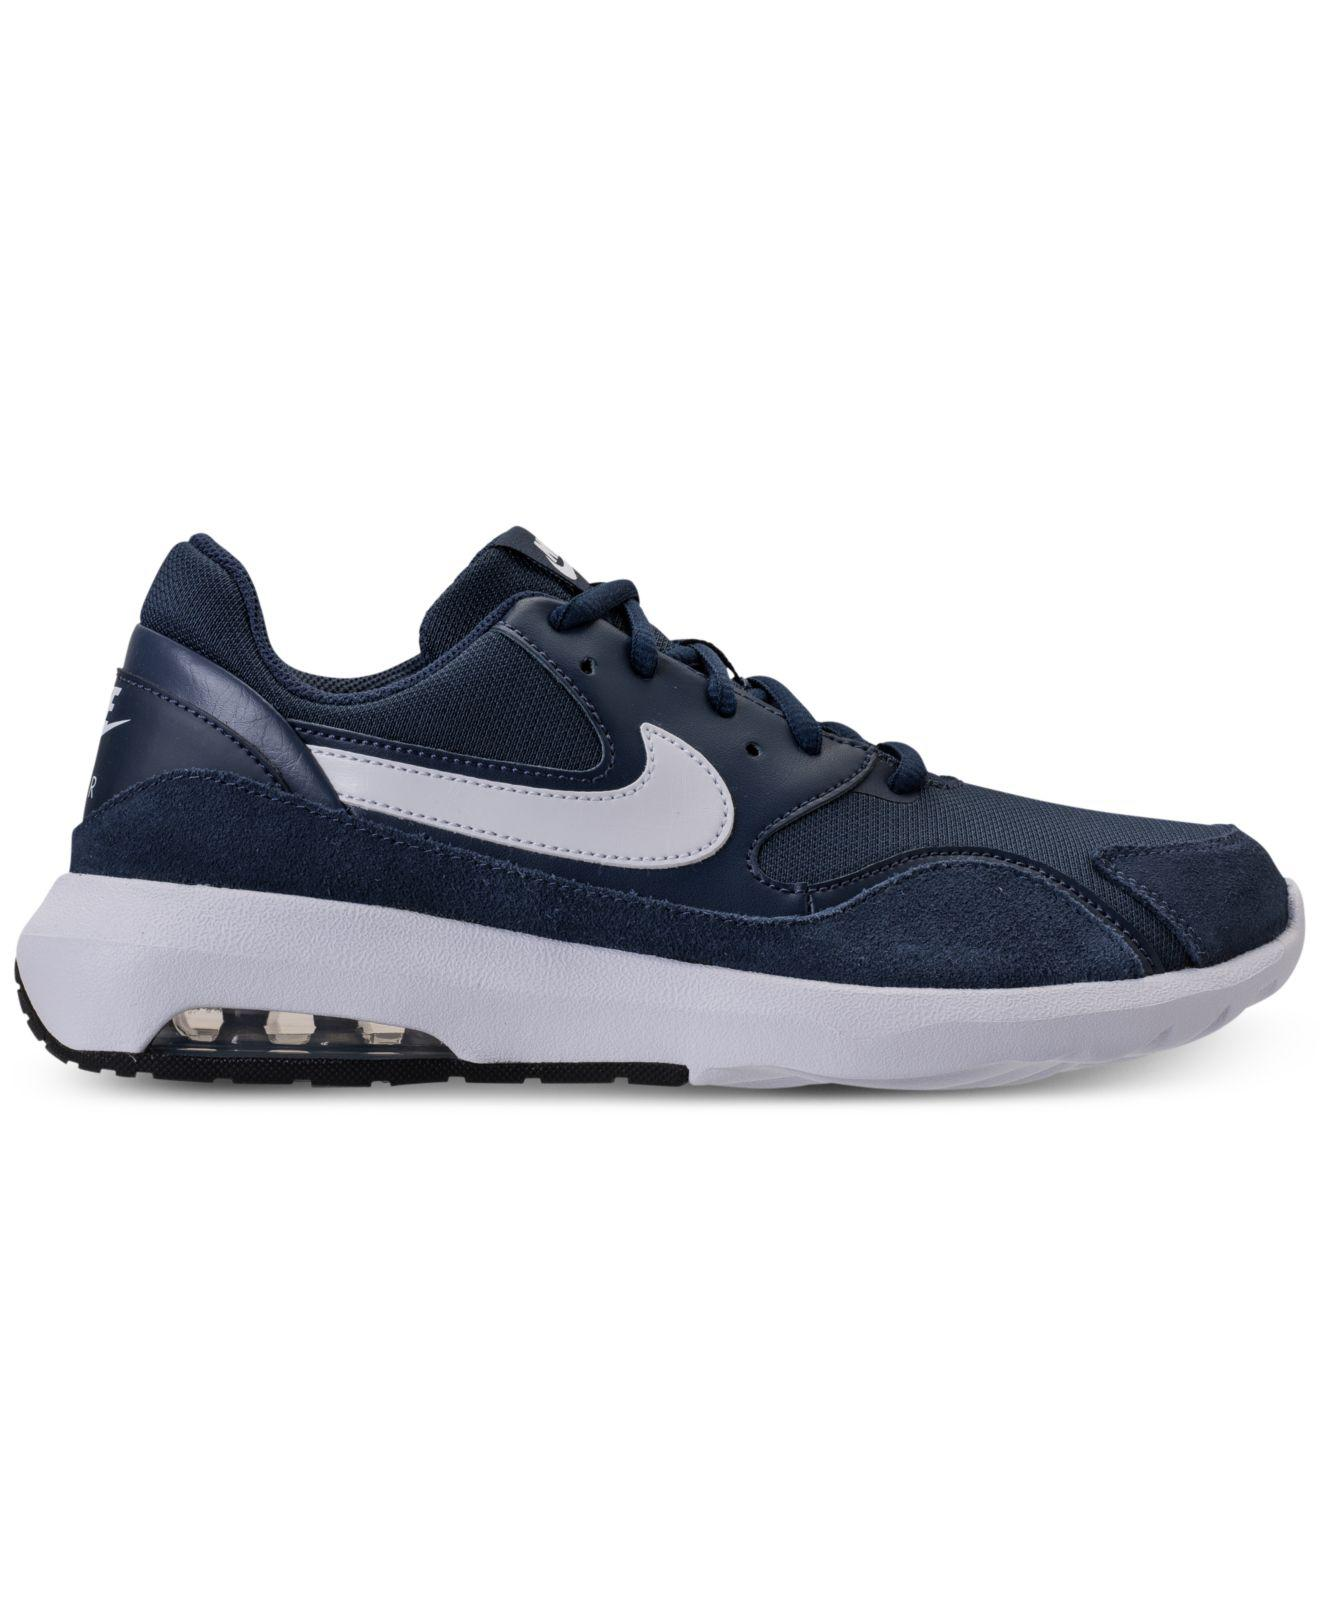 info for 31375 9c170 Nike Men s Air Max Nostalgic Casual Sneakers From Finish Line in ...